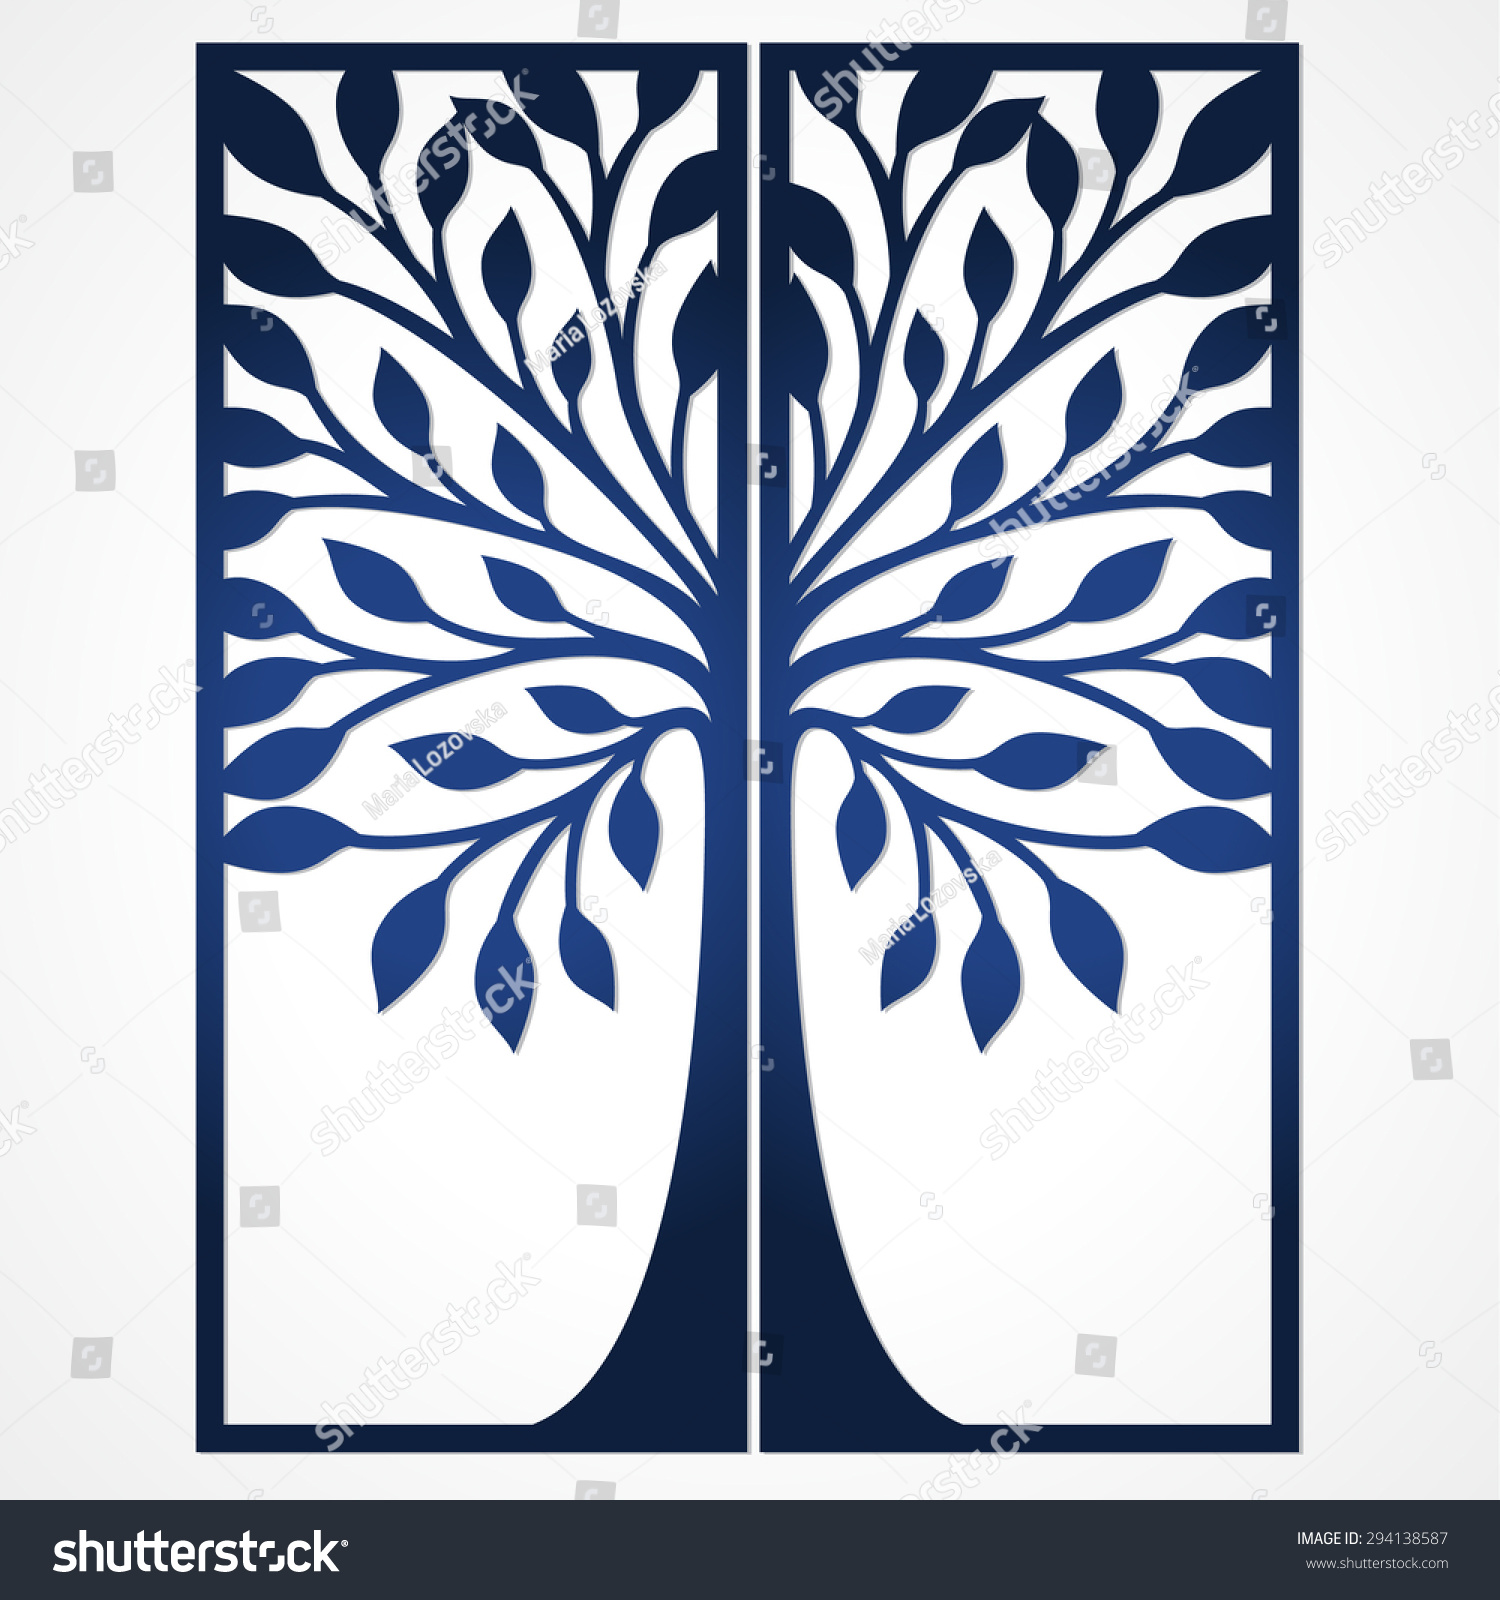 Abstract Frame Tree Suitable Laser Cutting Stock Vector 294138587 - Shutterstock